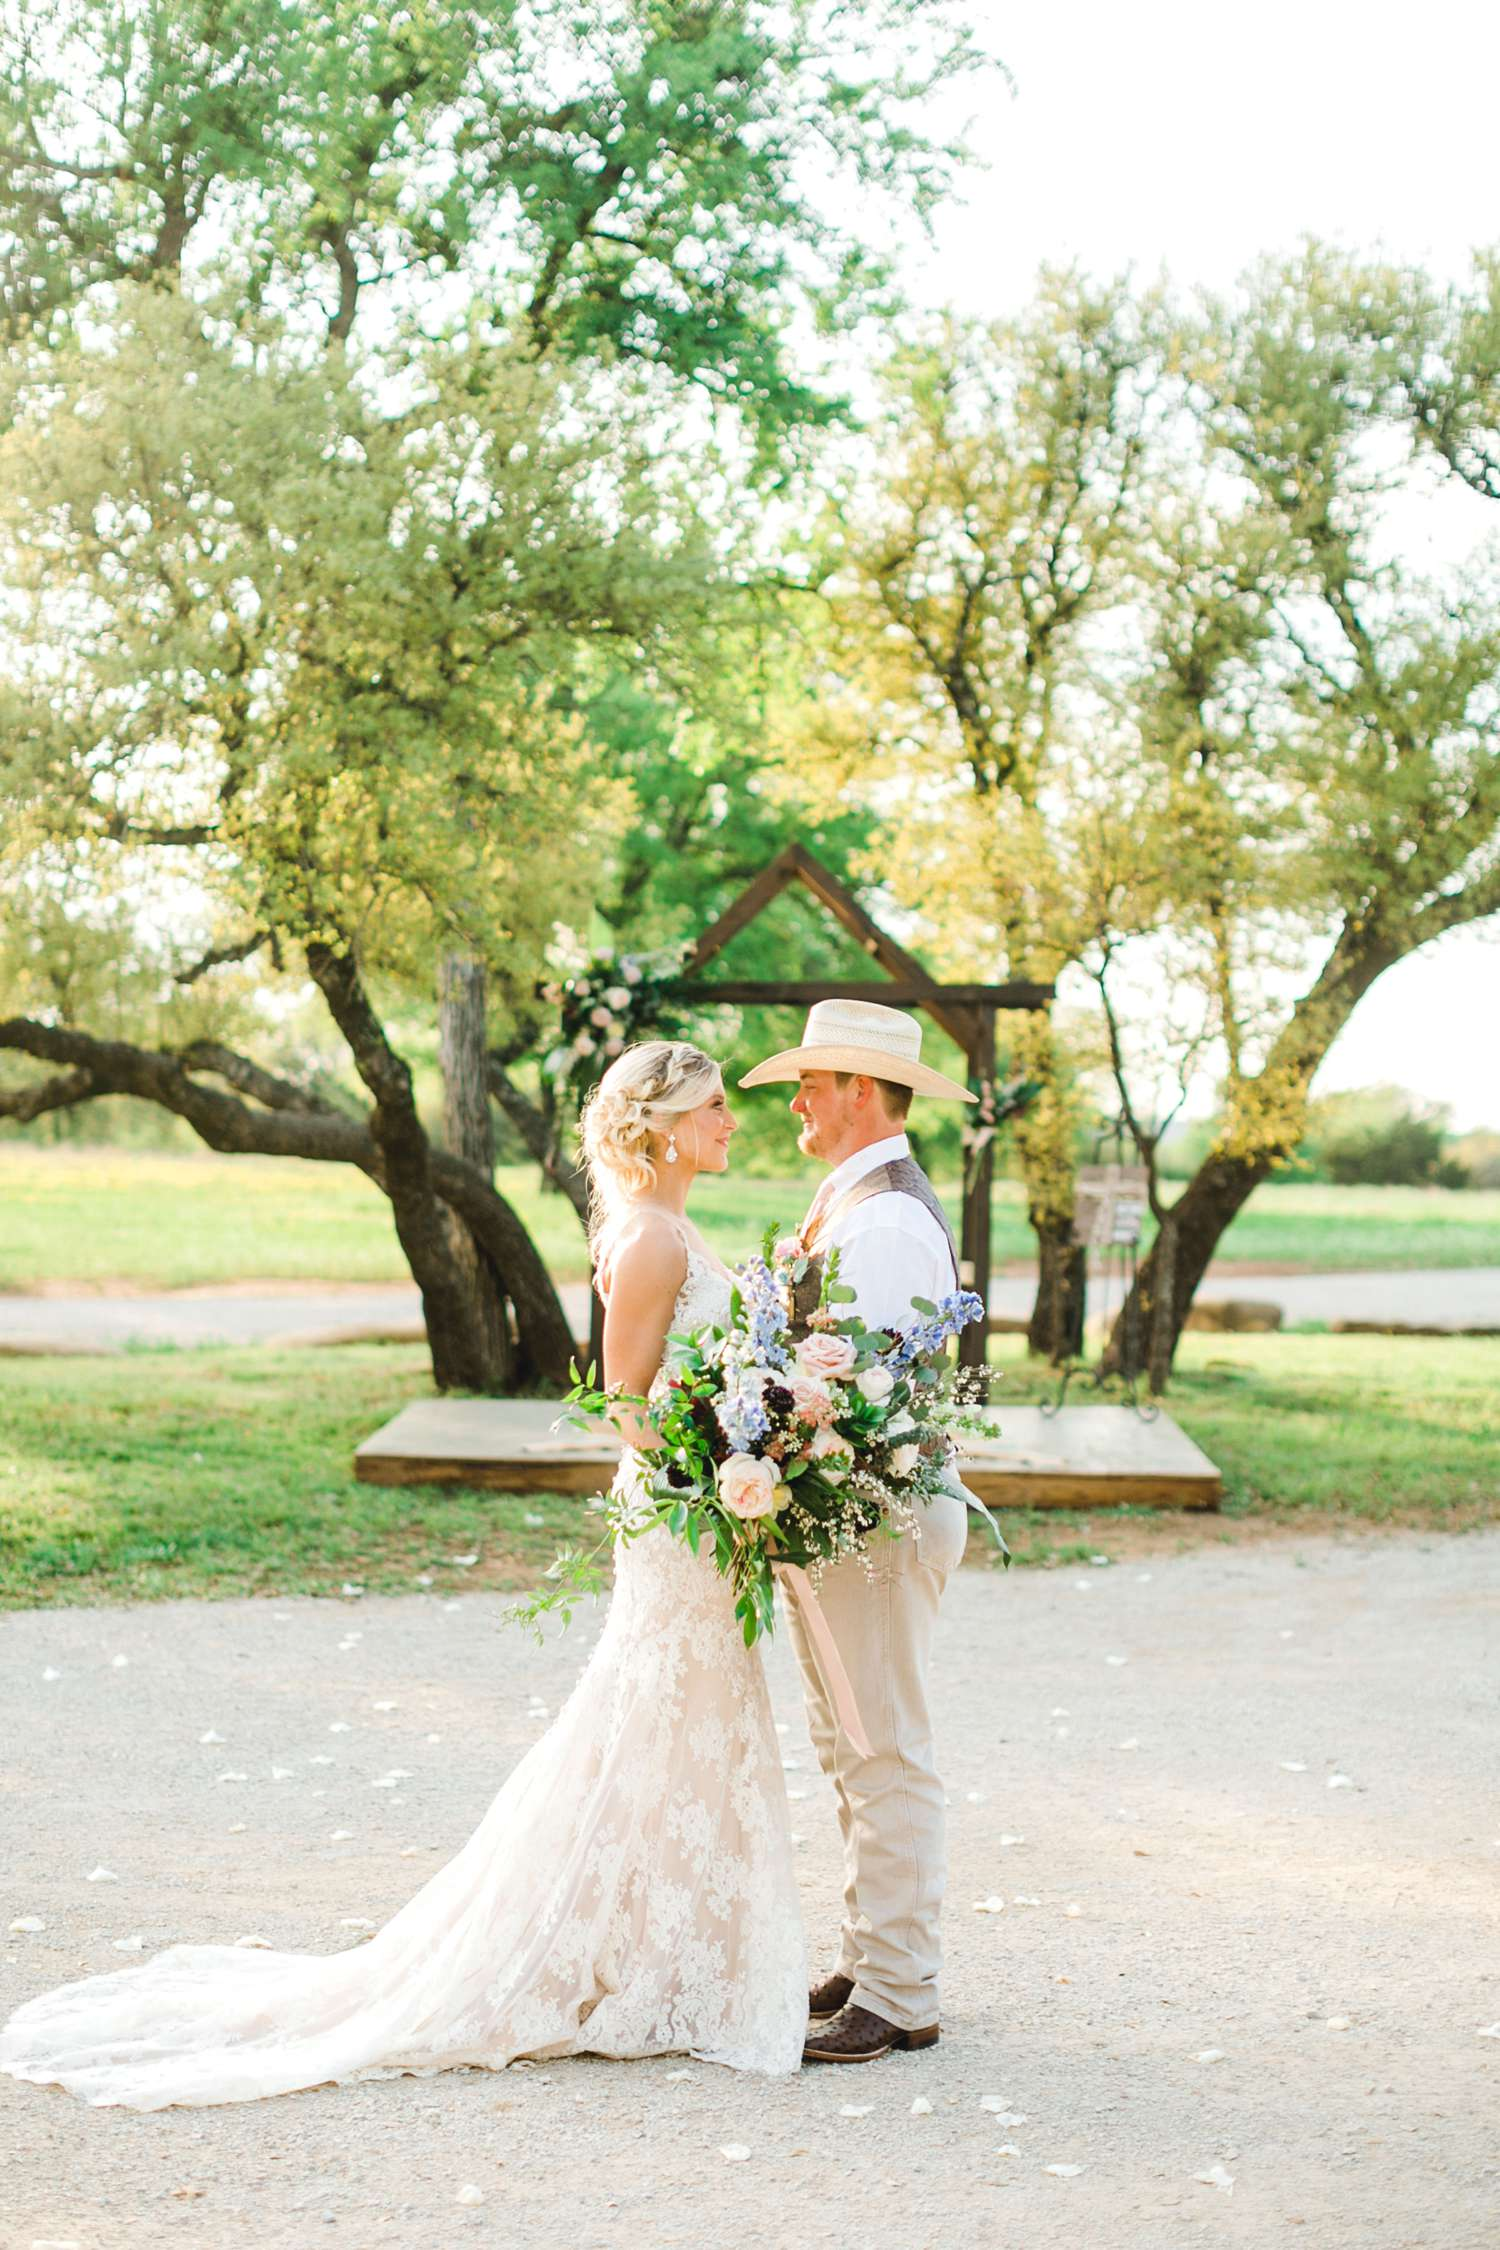 SARAH+TREVOR+BADGETT+SPARROW+CREEK+GRAHAM+TEXAS+ALLEEJ+WEDDINGS_0091.jpg